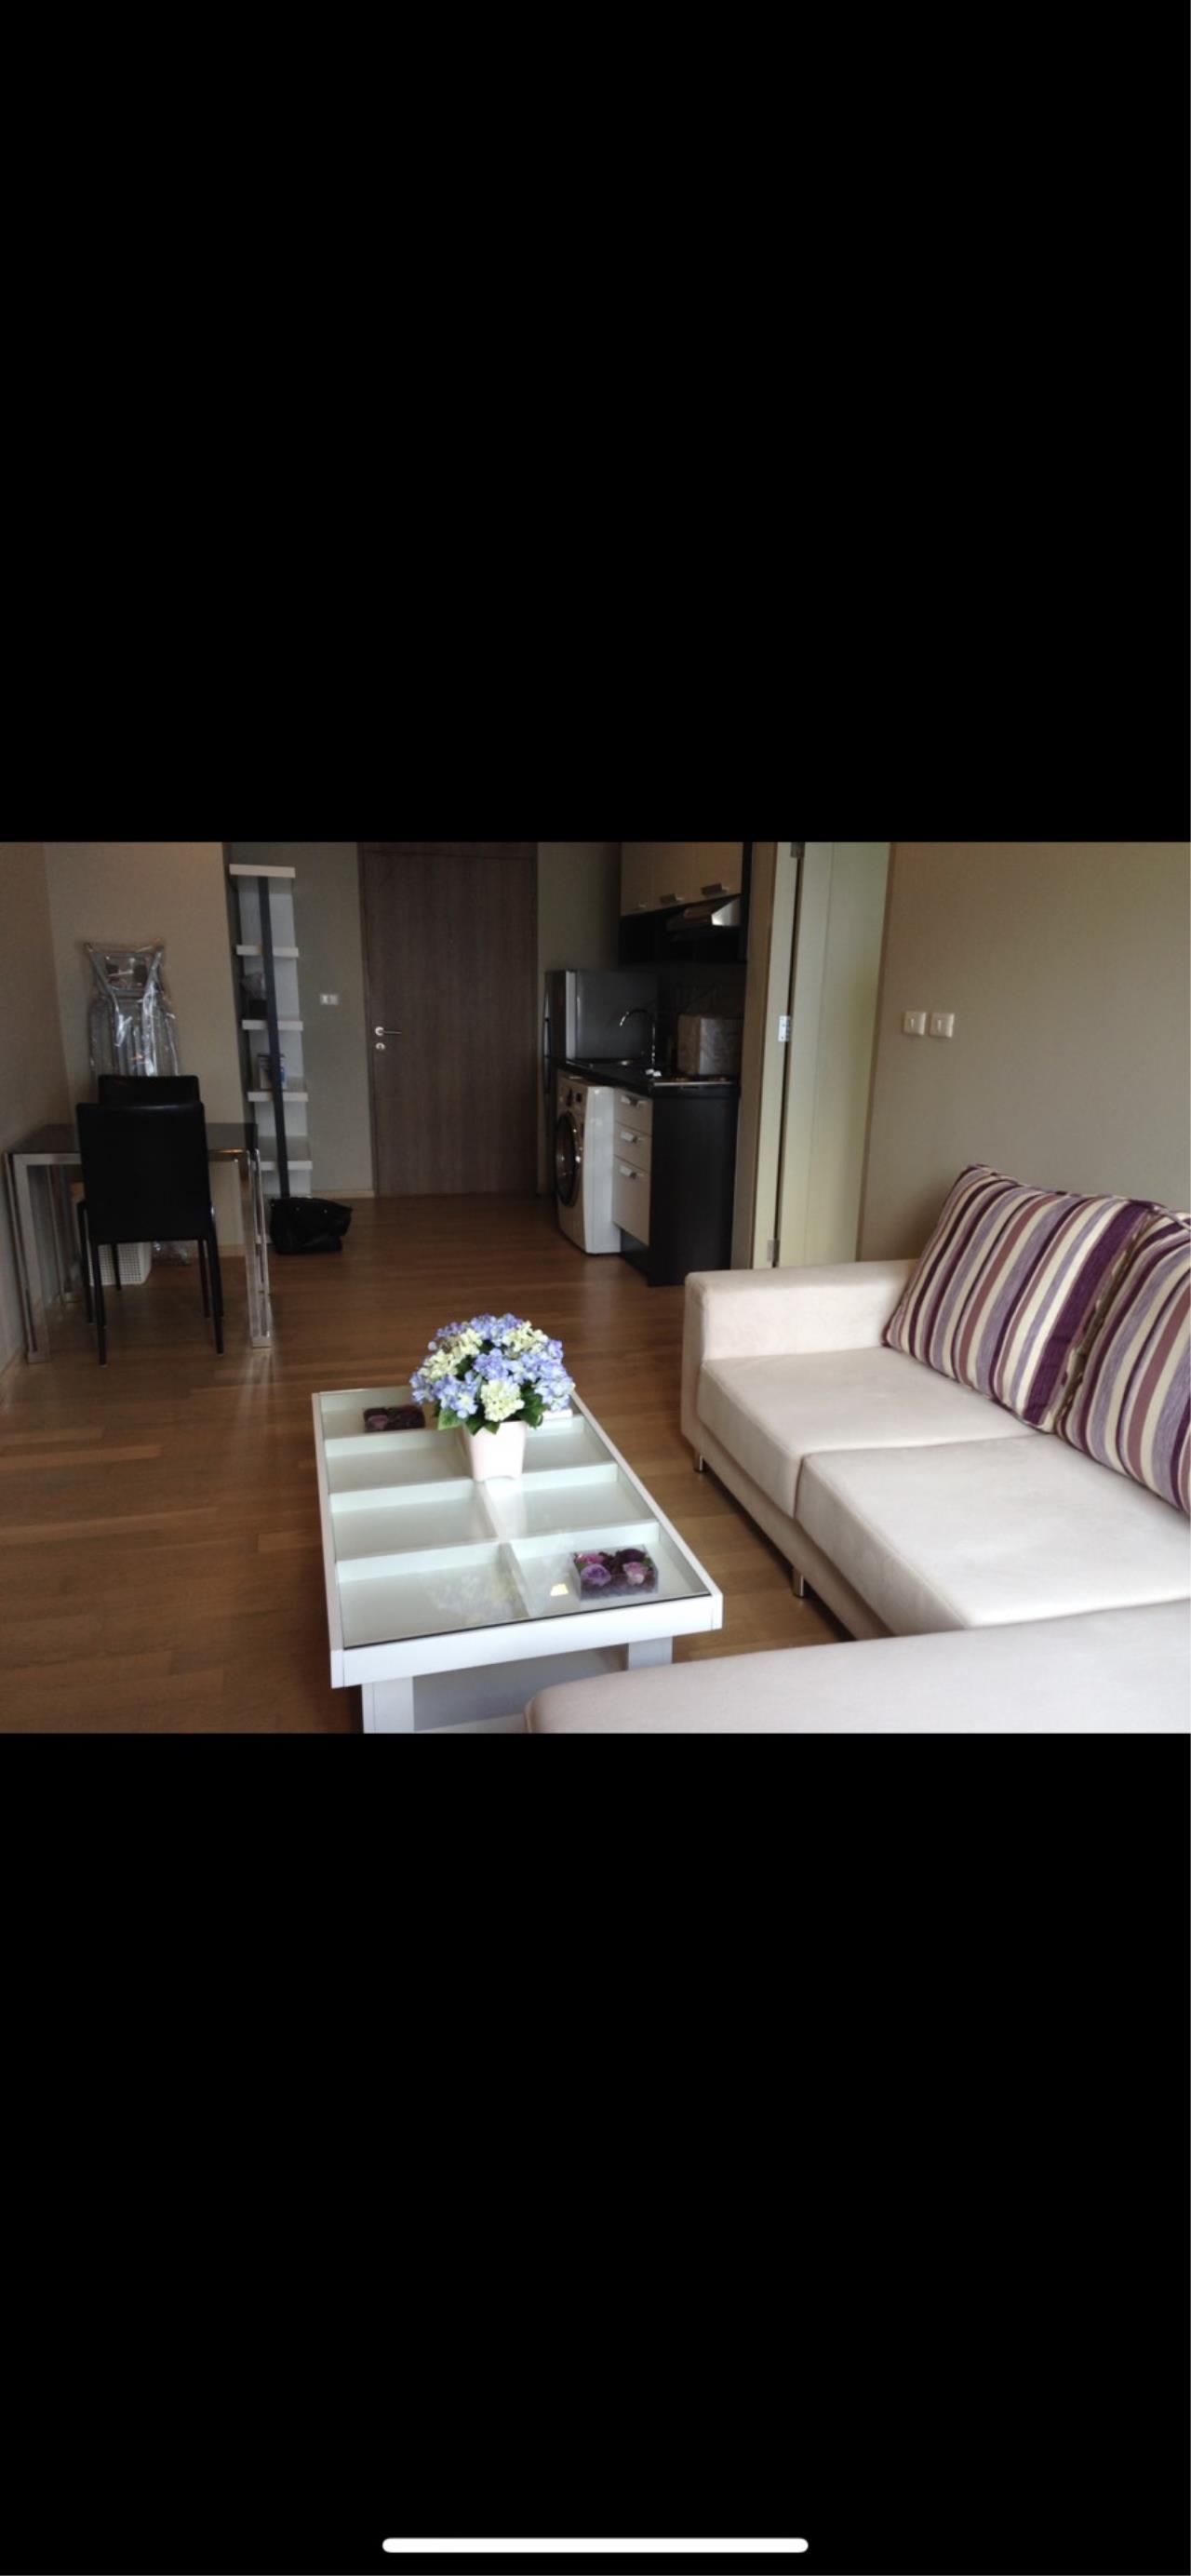 Blueocean property Agency's Condo for Rent at Noble Reveal 3